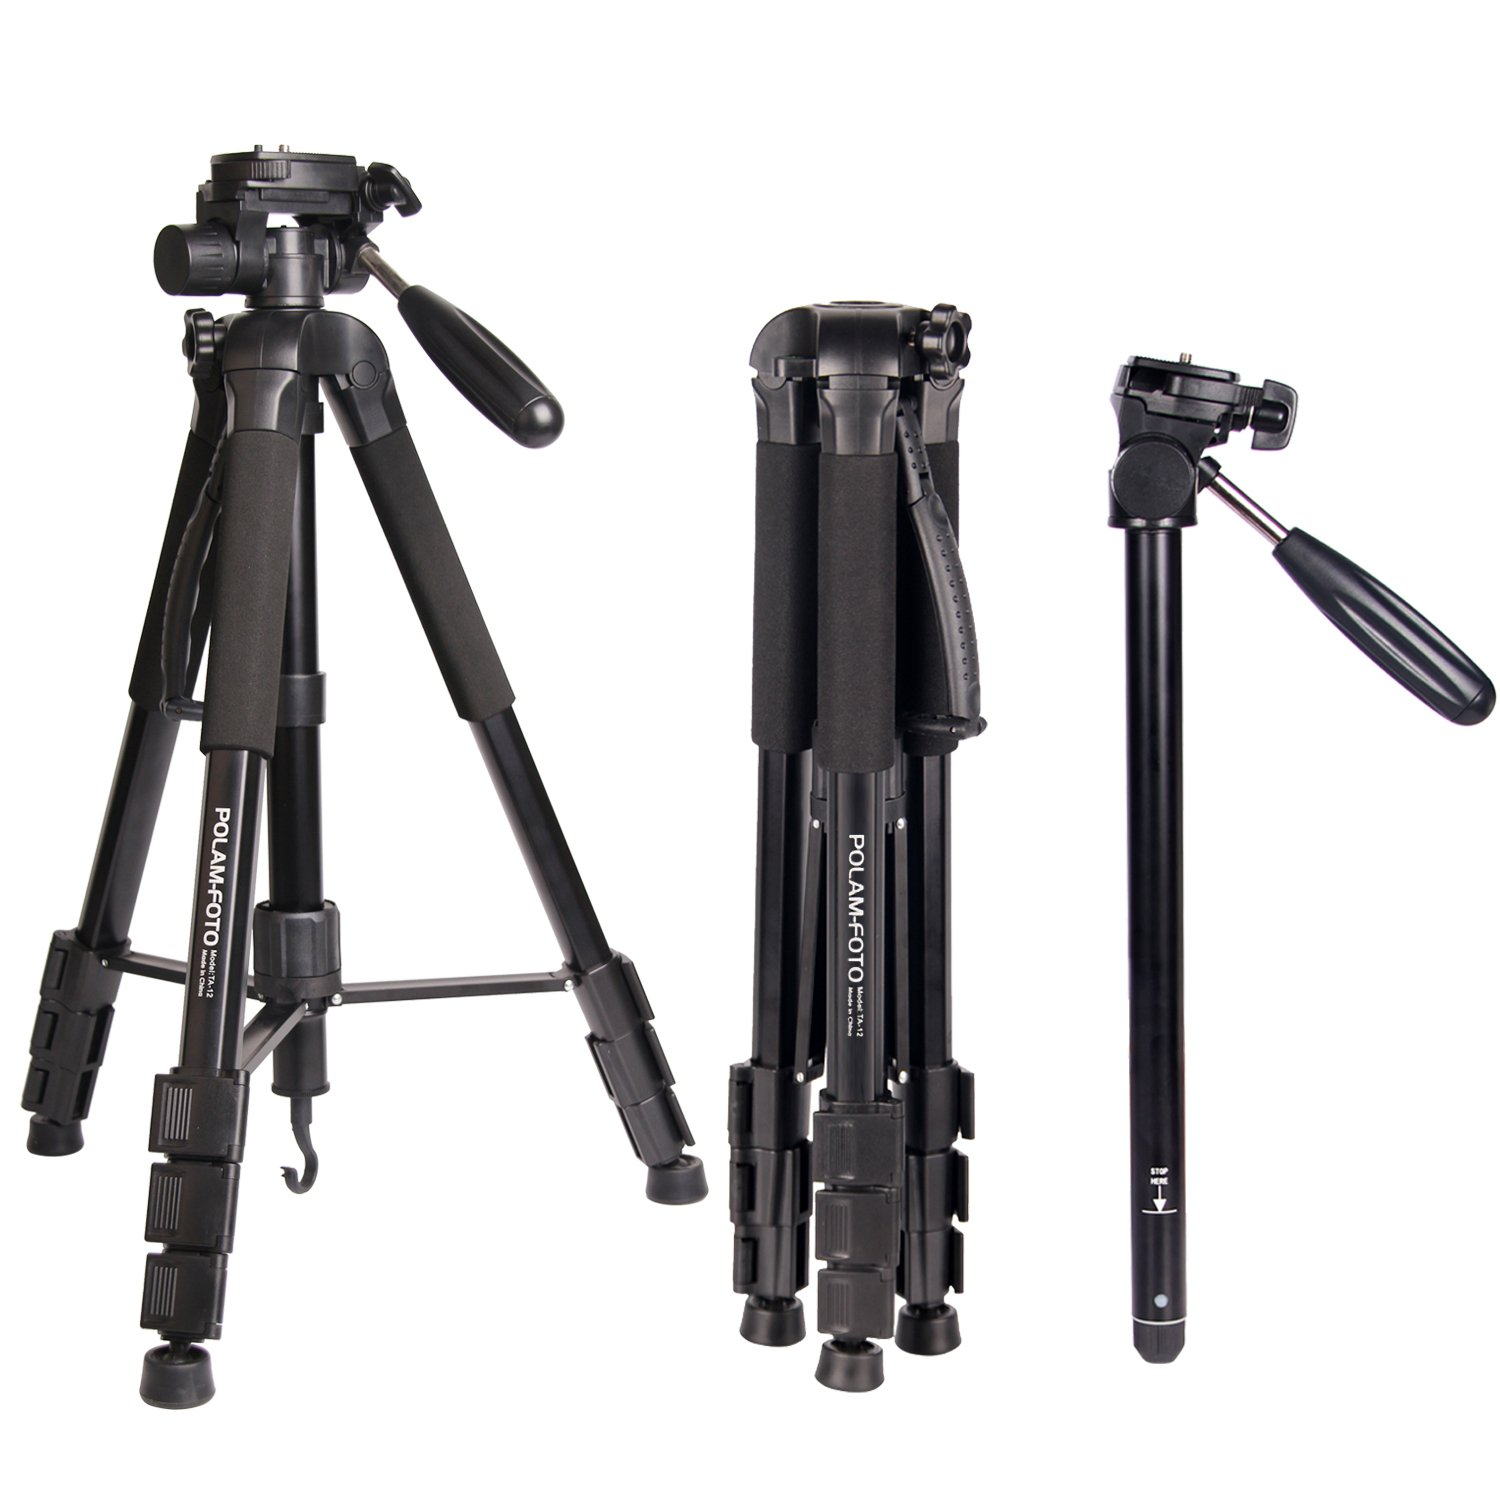 POLAM-FOTO 70''/176.5cm 2-in-1 Tripod Monopod-Camera Tripod AluminumTravel Tripod with Bag for Canon/Nikon/Sony DSLR/SLR Camera by POLAM-FOTO